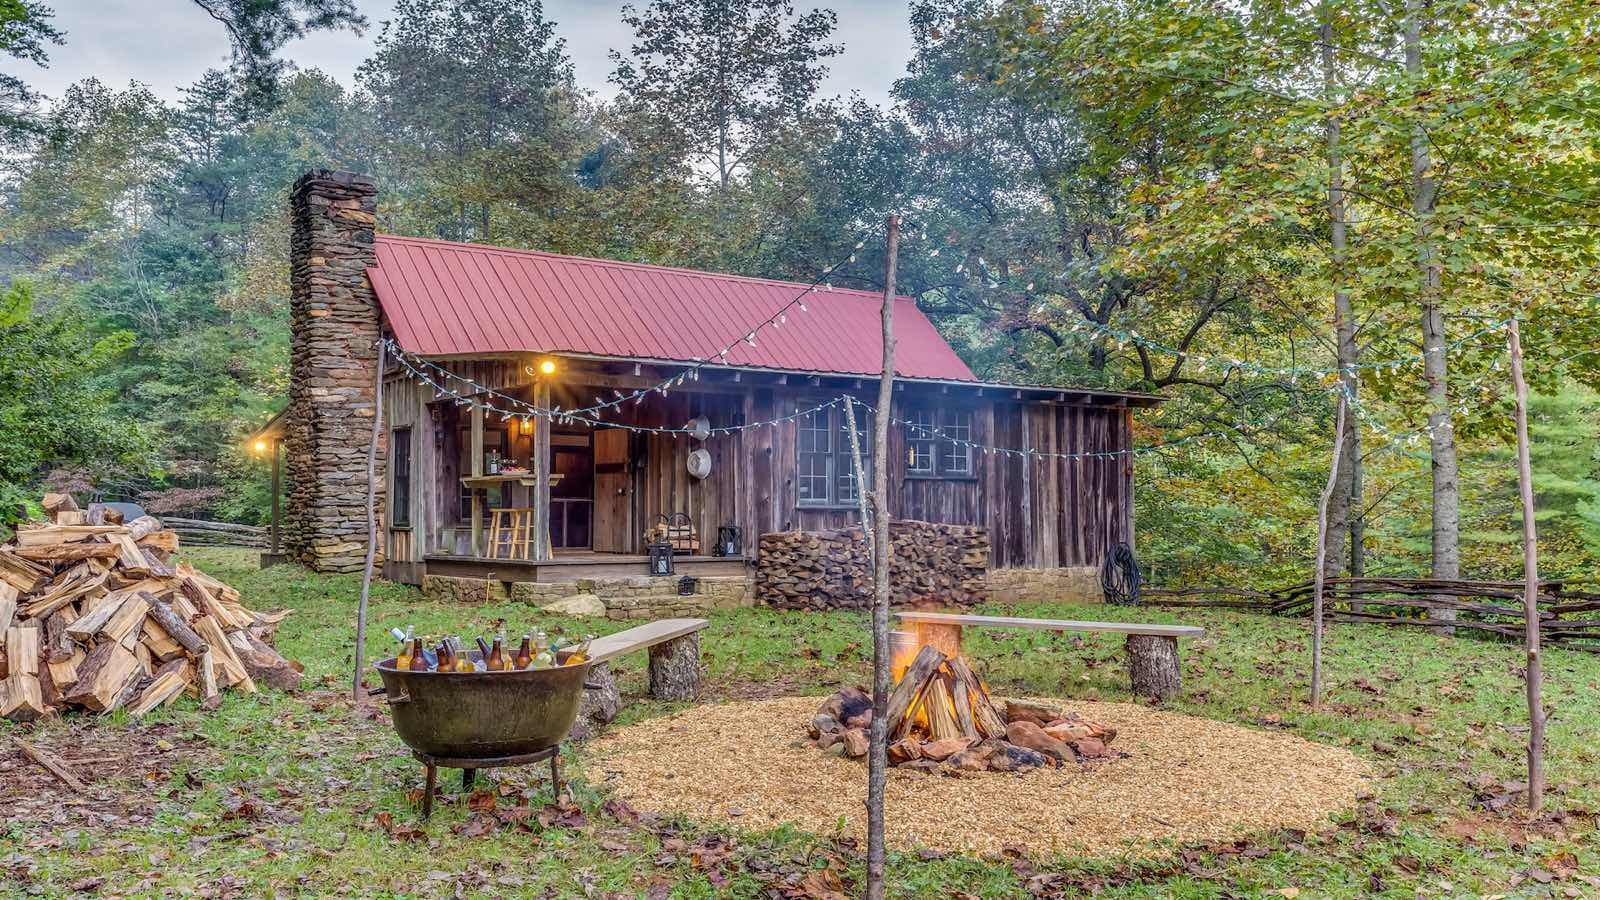 rentals helen pool ridge ga cheap atlanta with s swimming blue cabins georgia cabin in waterfront private near